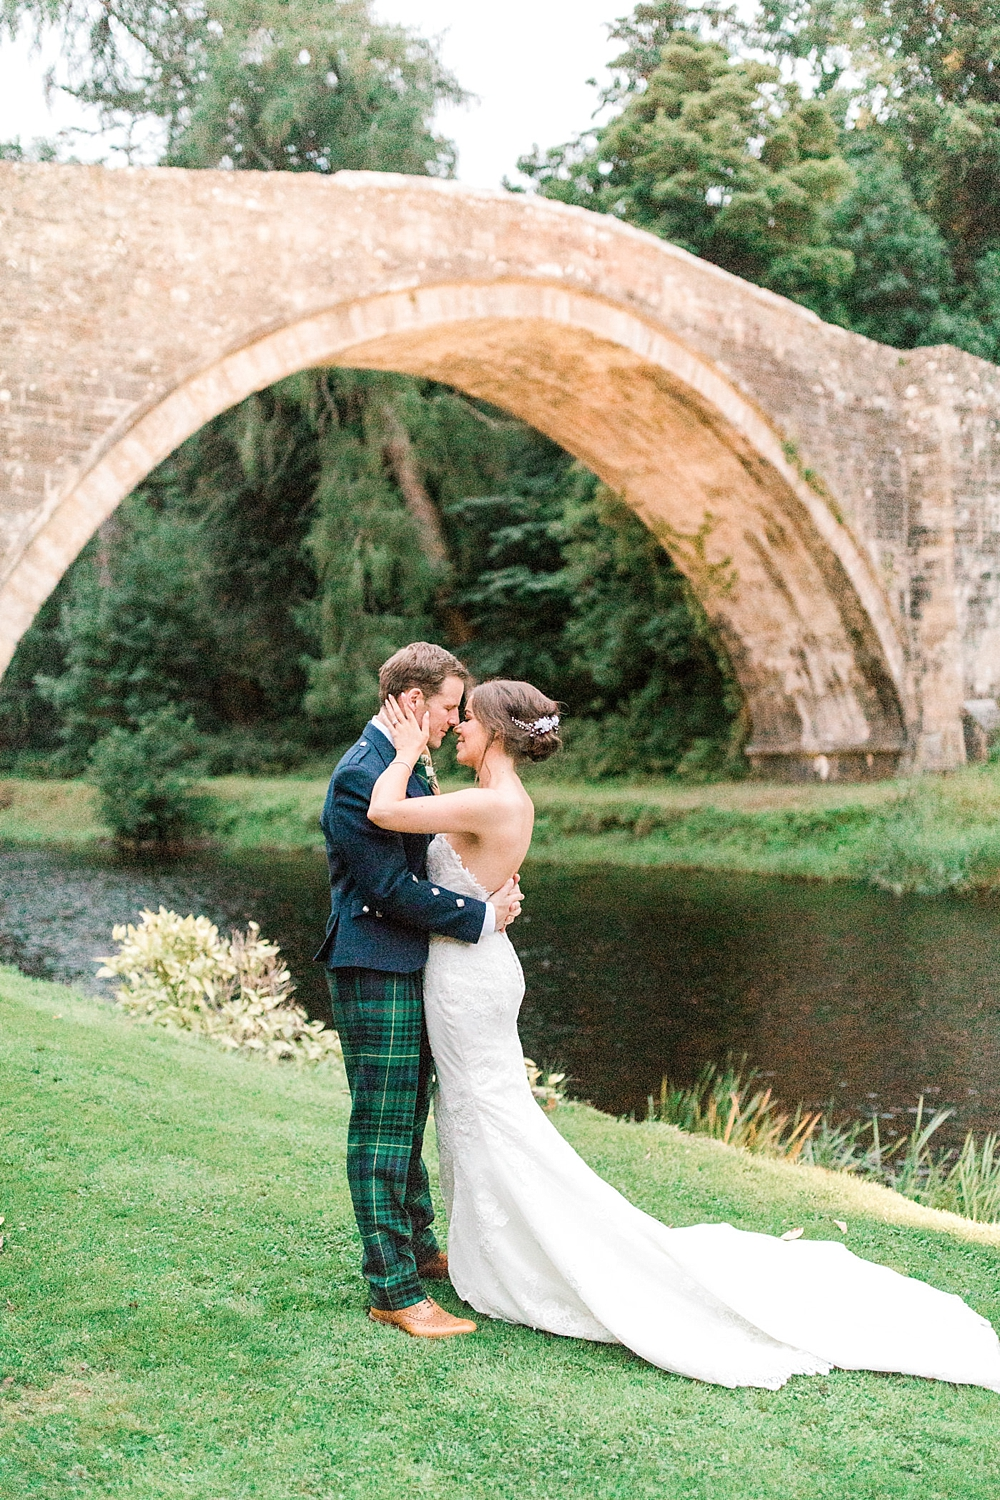 Scotland romantic fine art wedding photography 0103.jpg